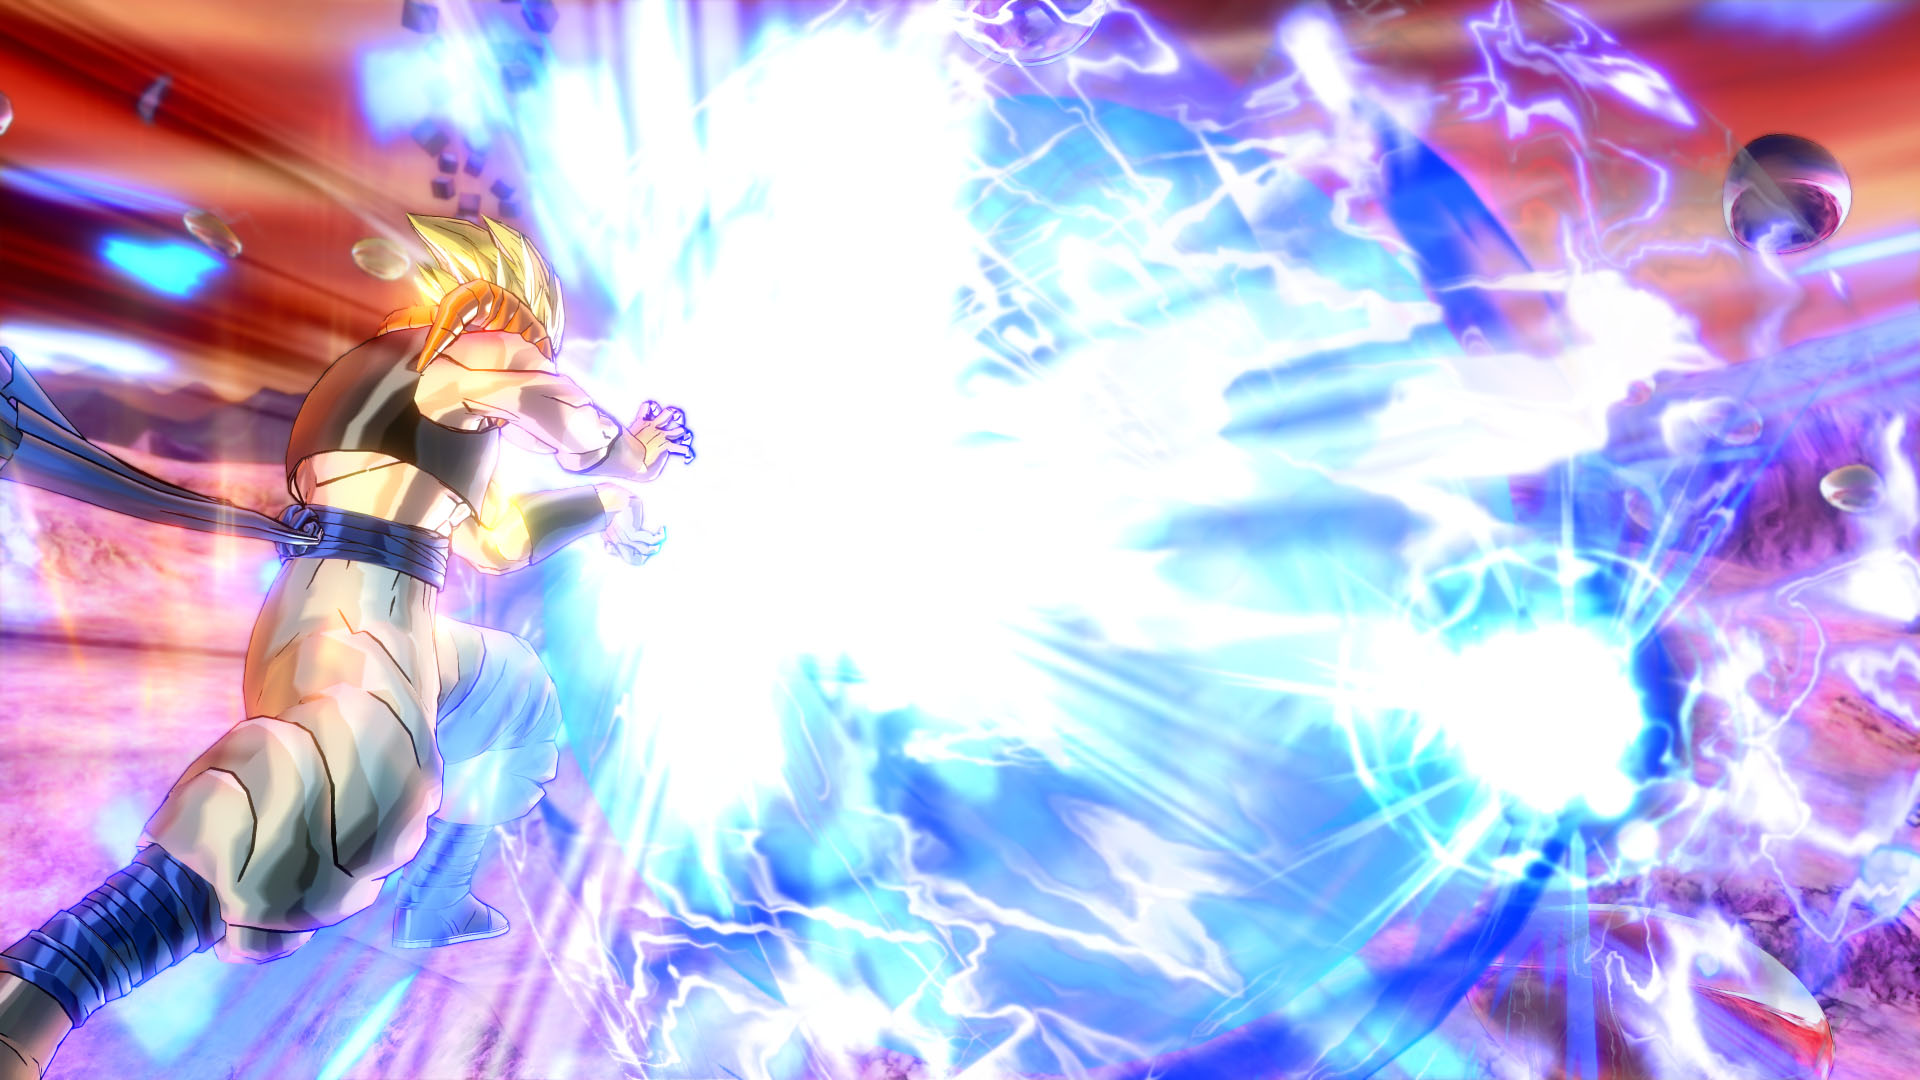 download dragon ball xenoverse 2 digital deluxe edition cracked by codex include all dlc and latest update mirrorace multiup